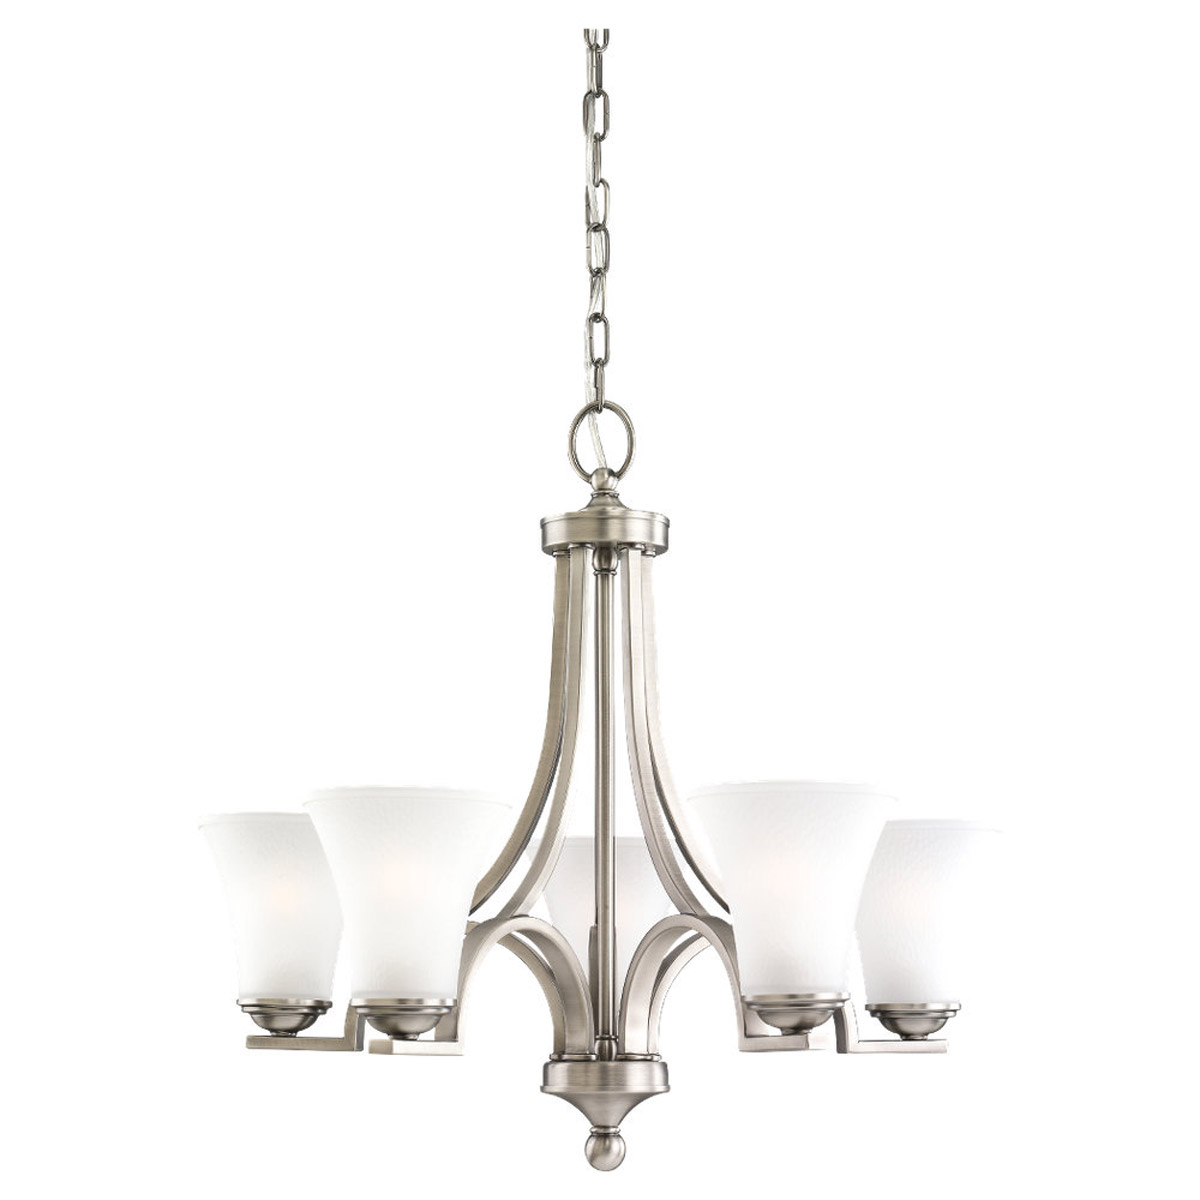 Sea Gull Lighting Somerton 5 Light Chandelier in Antique Brushed Nickel 31376-965 photo